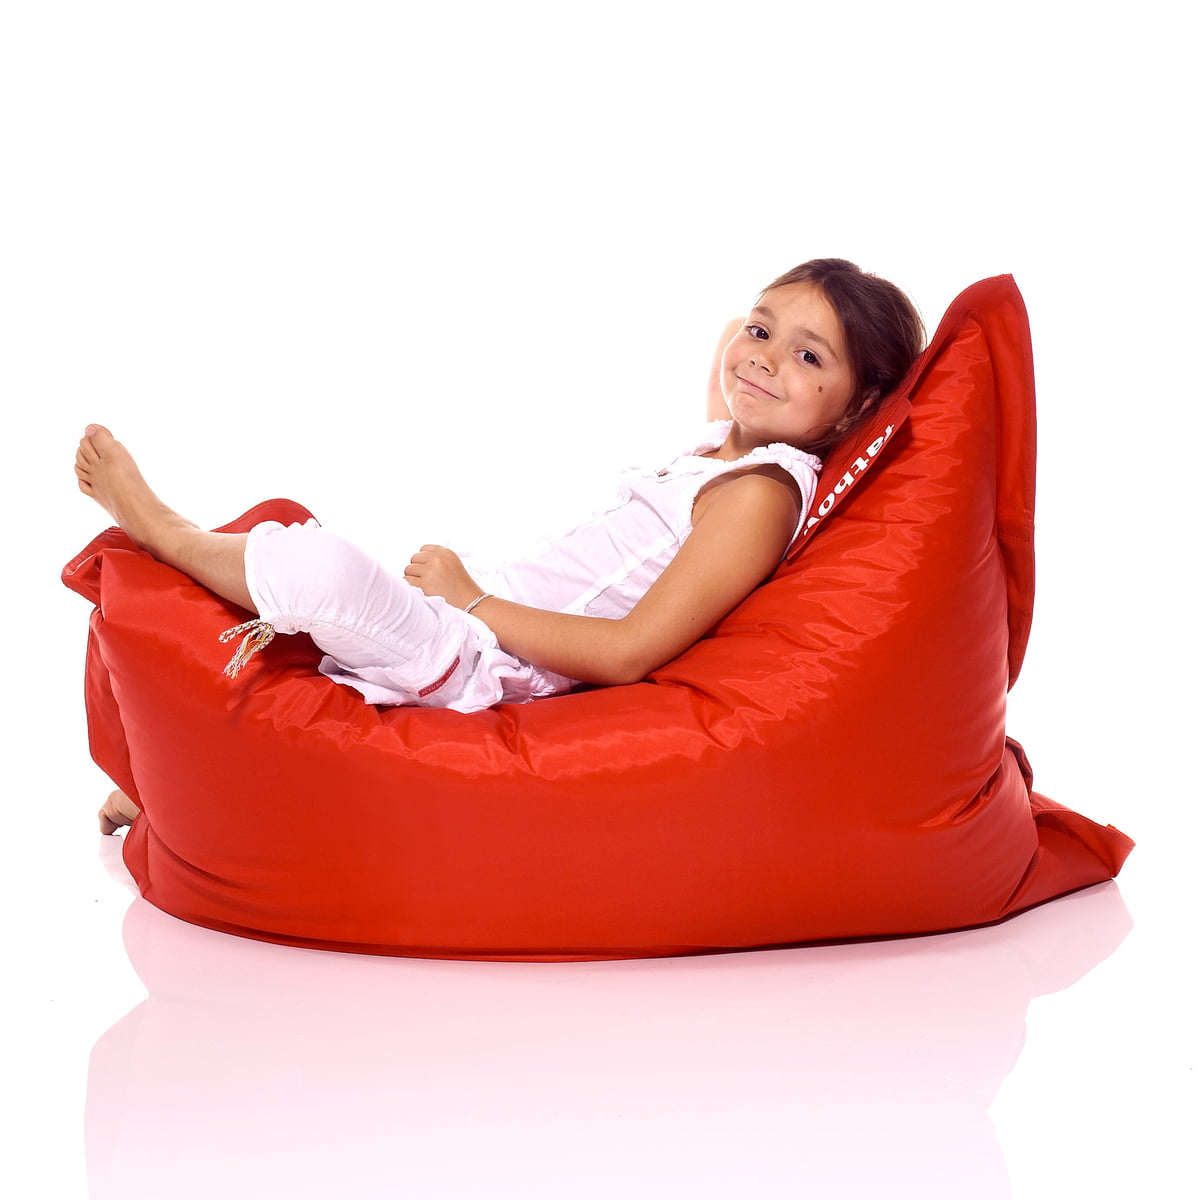 buy the junior beanbag by fatboy in our shop - junior beanbag by fatboy in red